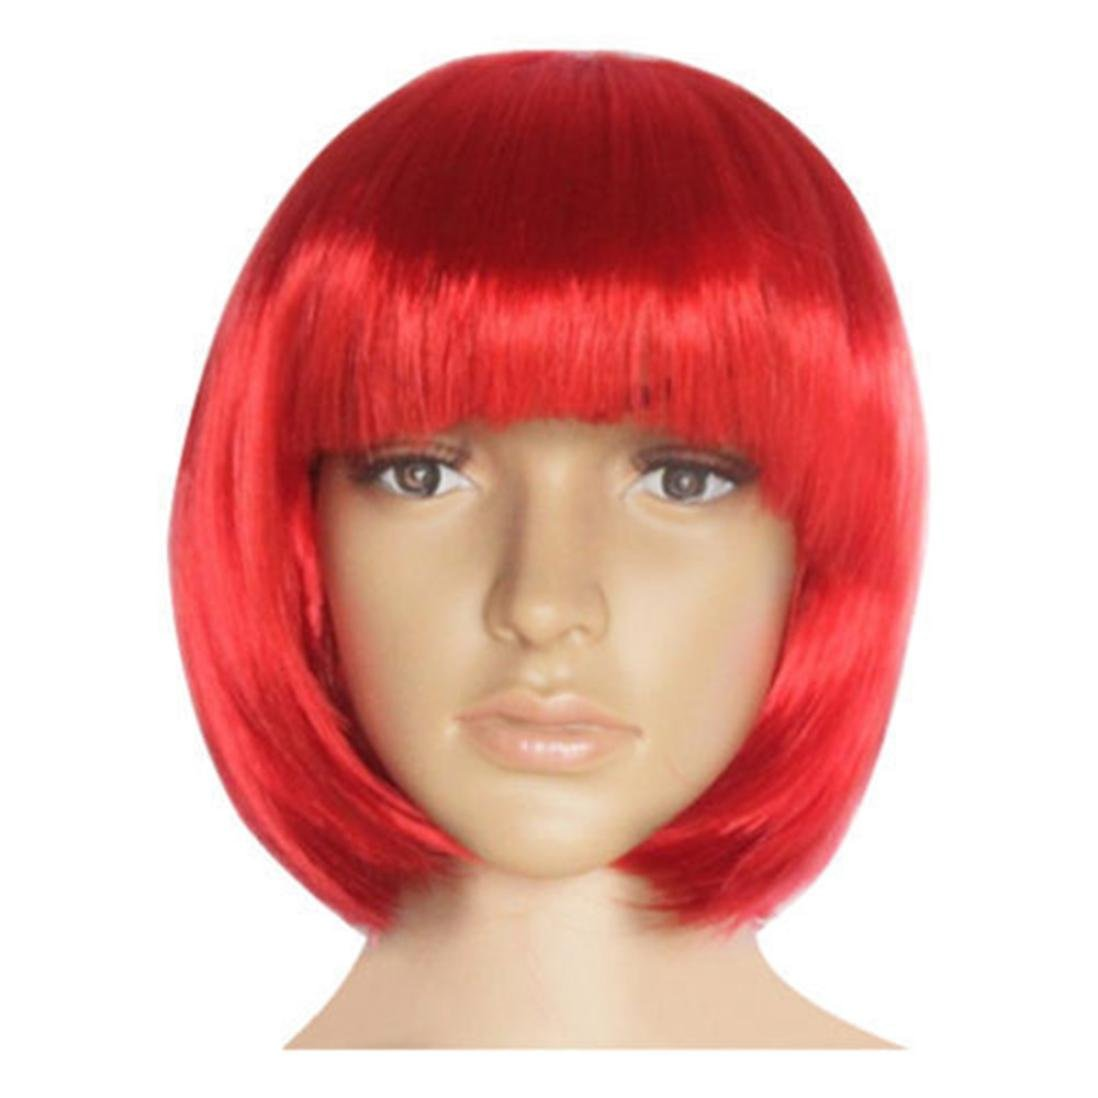 Amazon.com: Huphoon Fashion Girl Lady Short Wig Cap Fine for Cosplay Party Short Straight Hair (o): Beauty